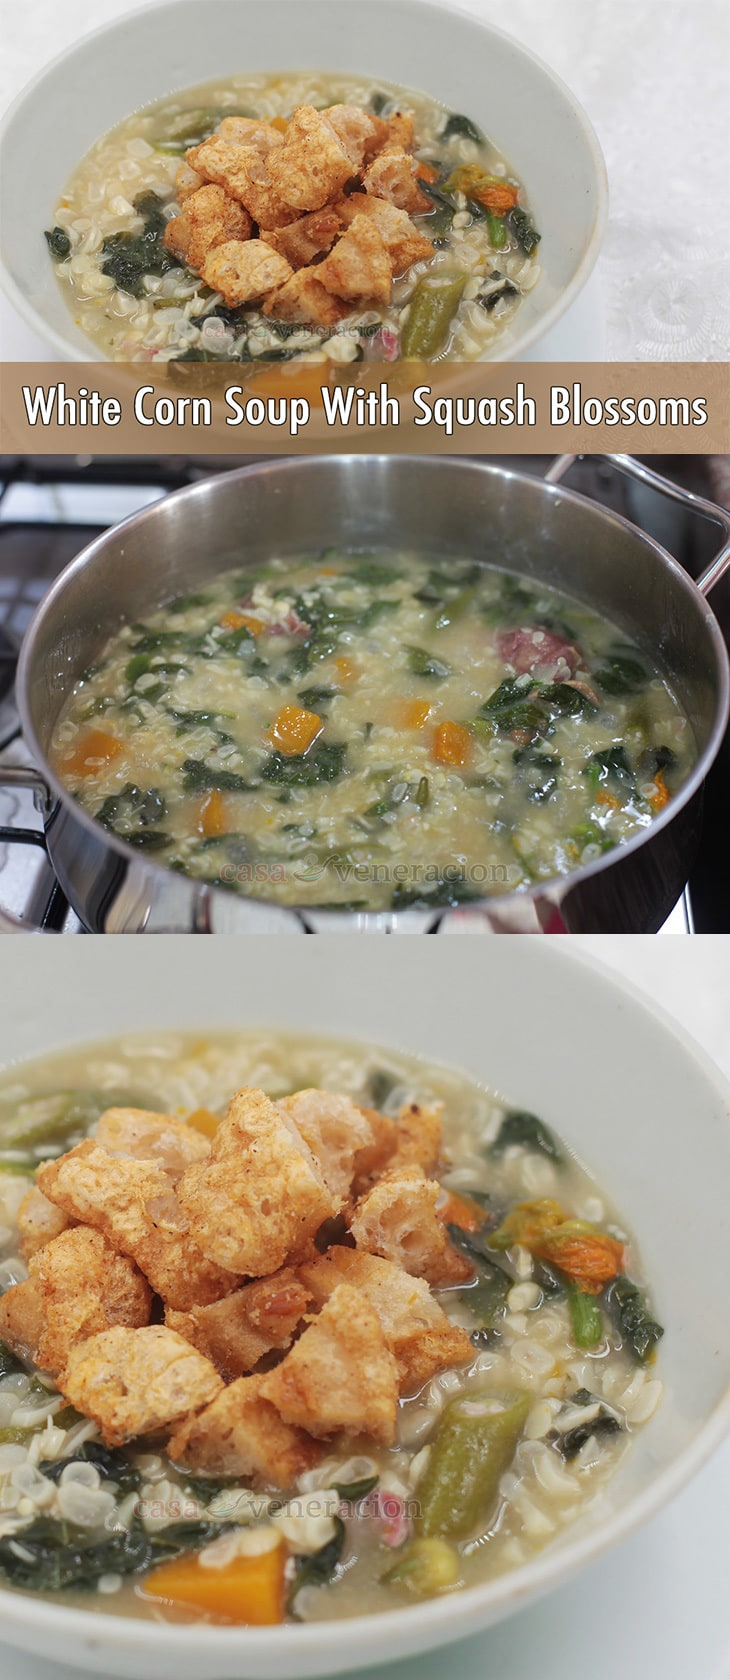 I always thought that white corn soup with squash blossoms was a Filipino dish. Now I wonder if it might be an adaptation of a traditional Oaxacan soup. | casaveneracion.com